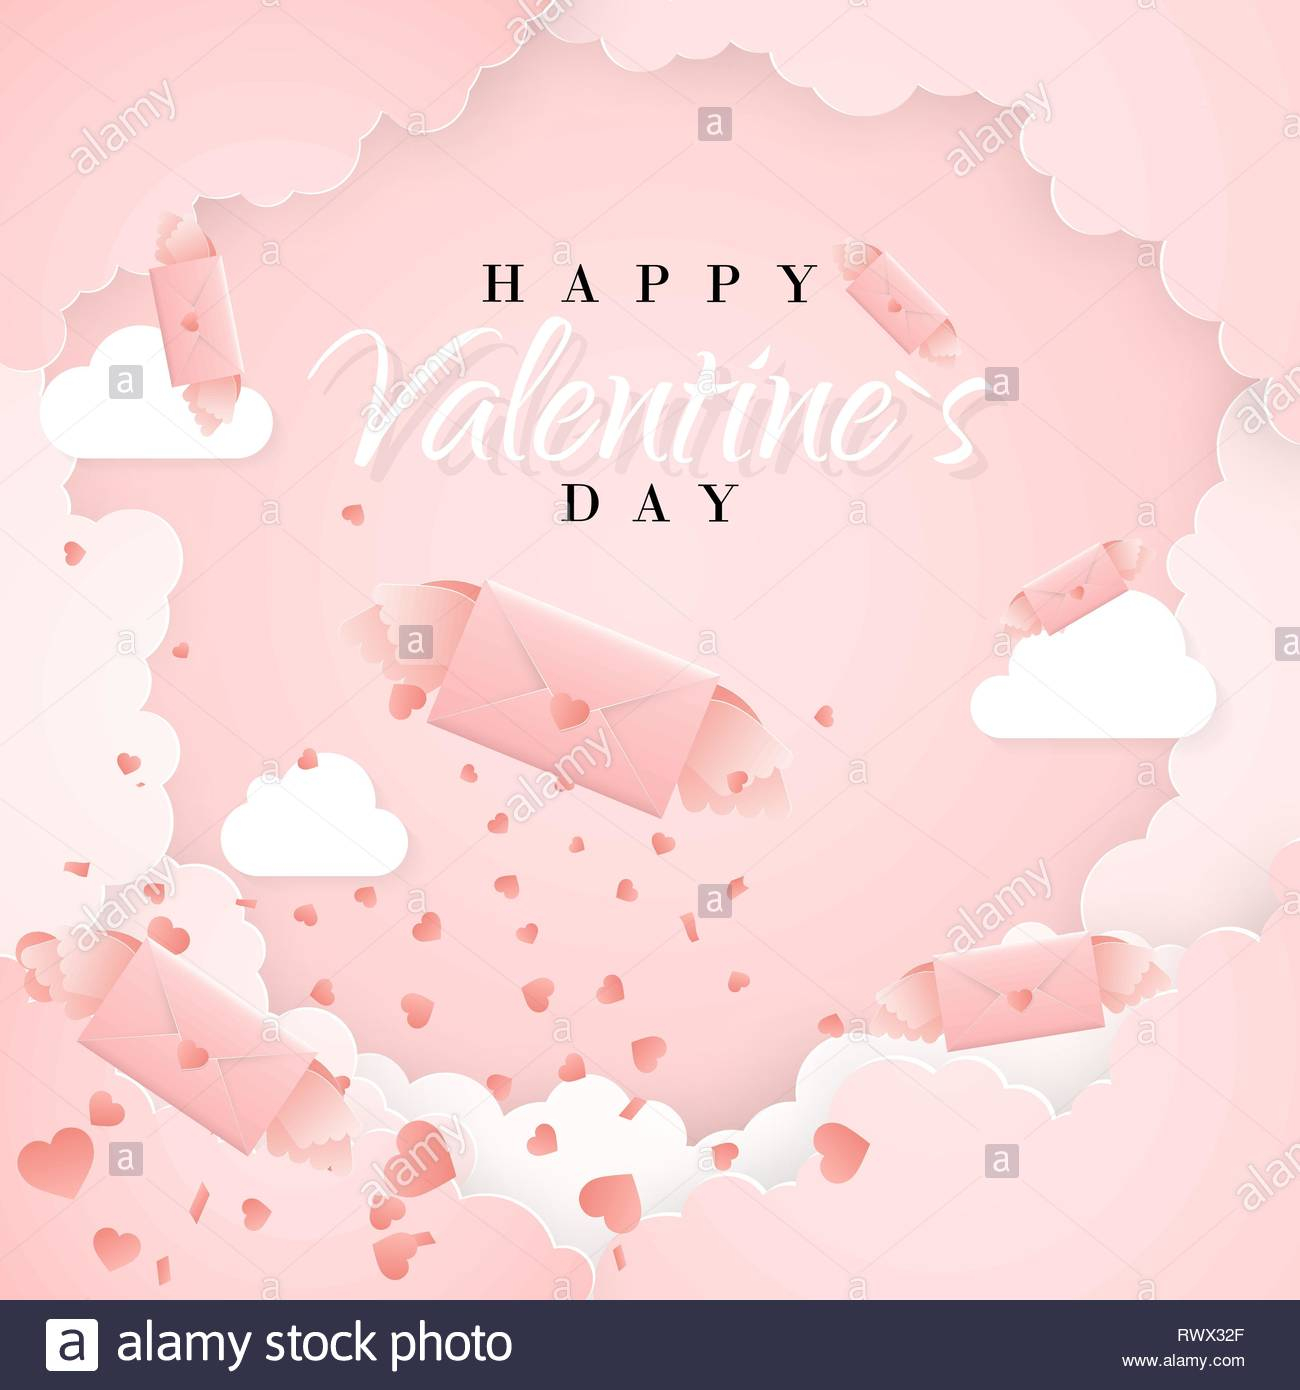 happy valentines day invitation card template with origami paper letter clouds and confetti pink background vector illustration RWX32F